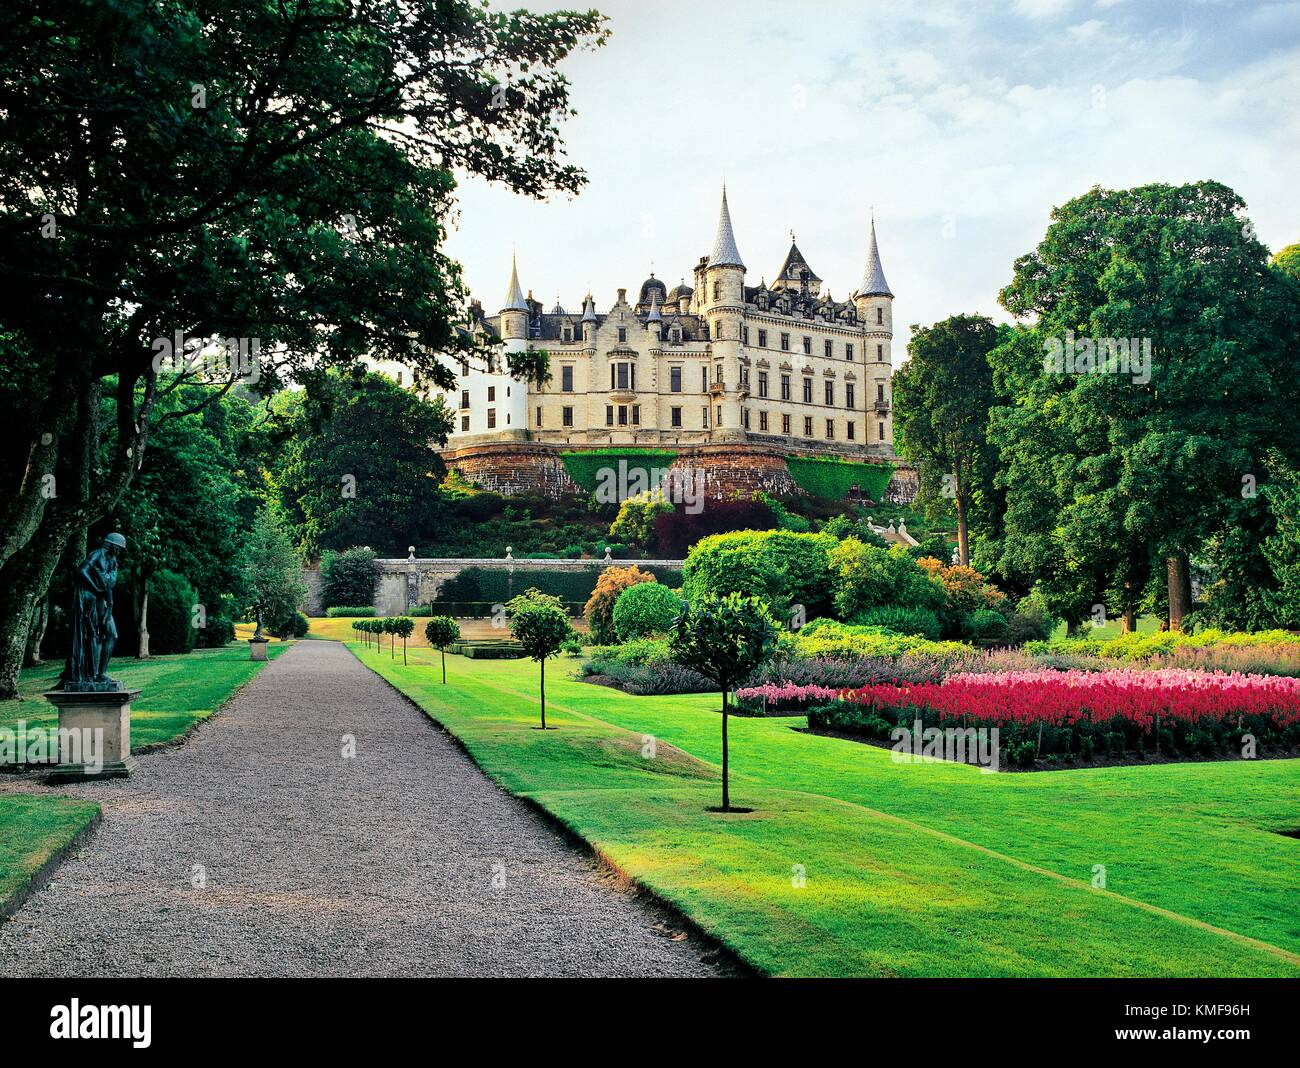 Dunrobin Castle, home of the Duke of Sutherland by architect Sir Charles Barry. Highland region, N.E. Scotland - Stock Image